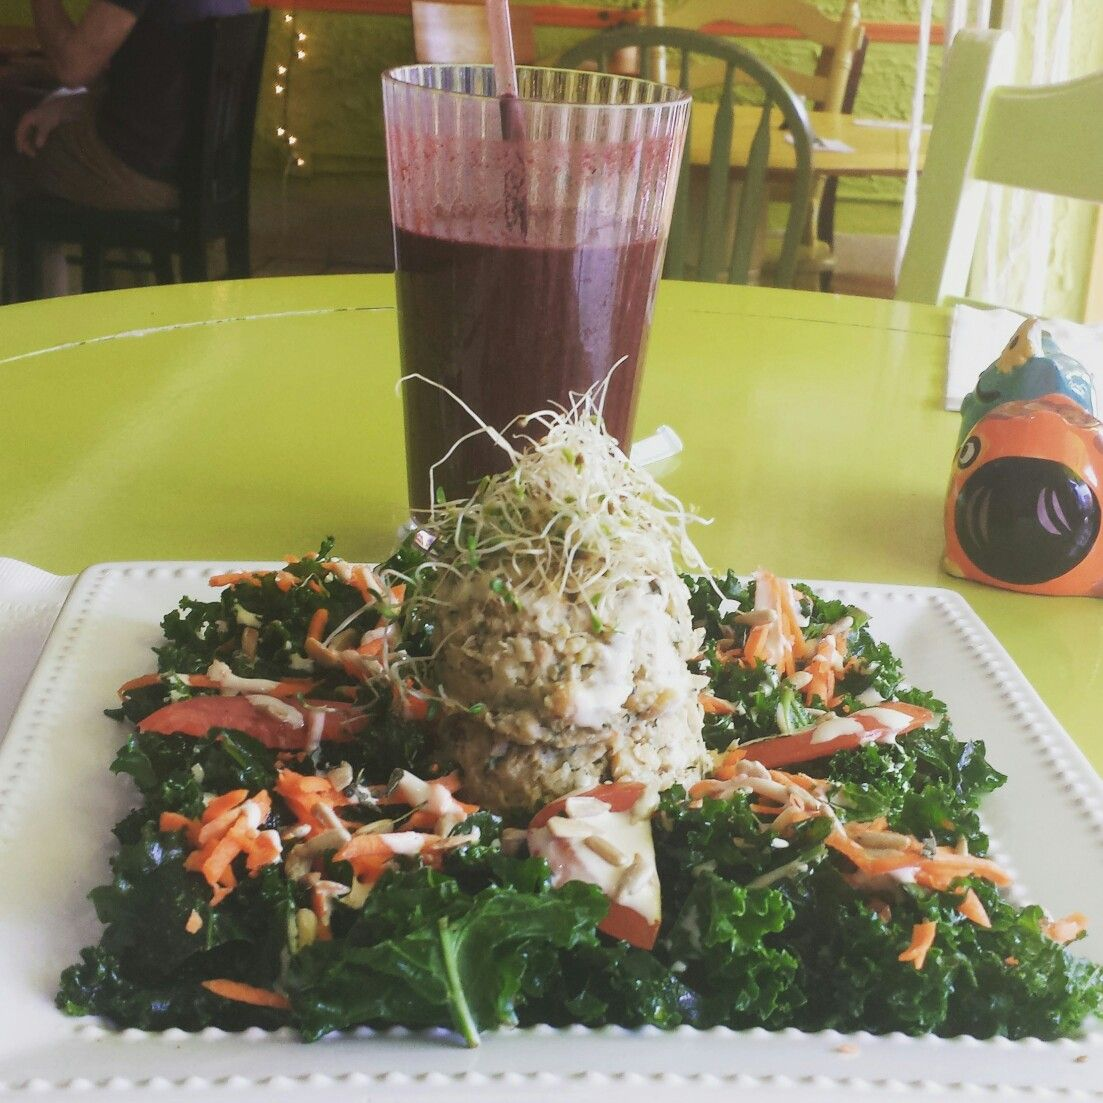 Vegan Tuna And Kale Sandwich At Eat The Tea Cafe In Fort